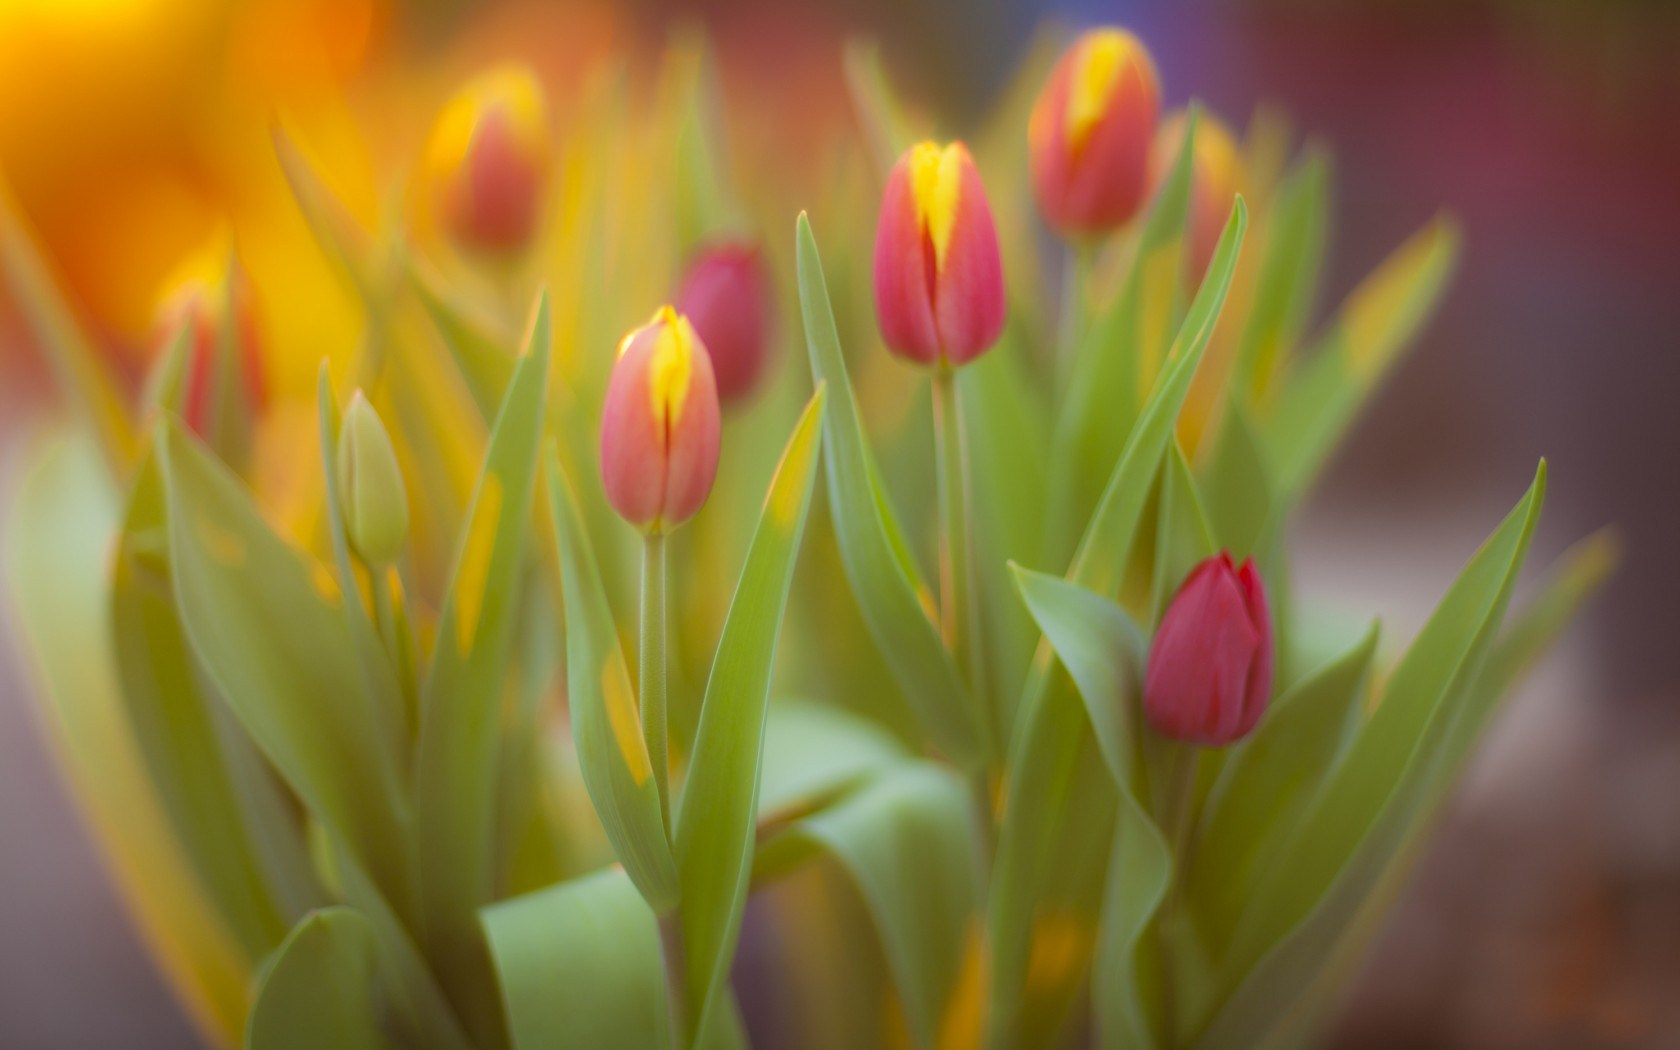 Flowers Tulips Spring Yellow and Pink